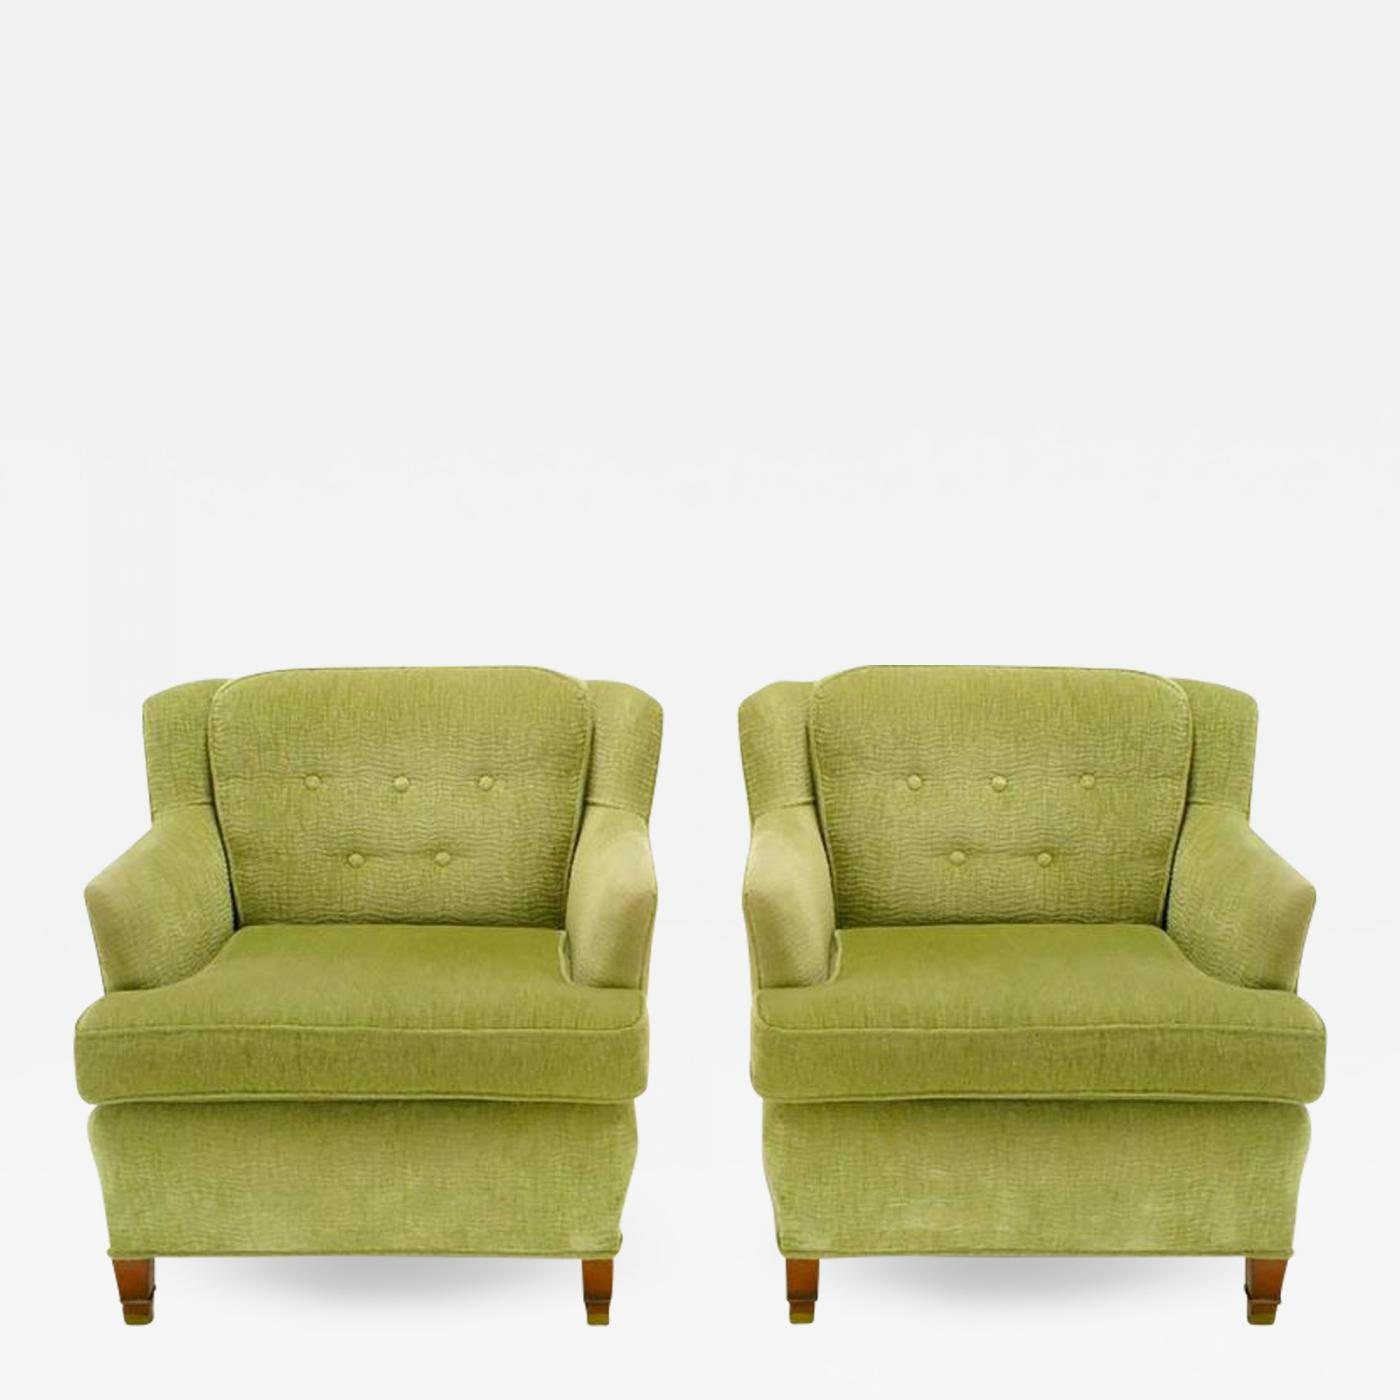 Prime Pair Of Pistachio Green Chenille Button Tufted Low Barrel Back Wing Chairs Alphanode Cool Chair Designs And Ideas Alphanodeonline